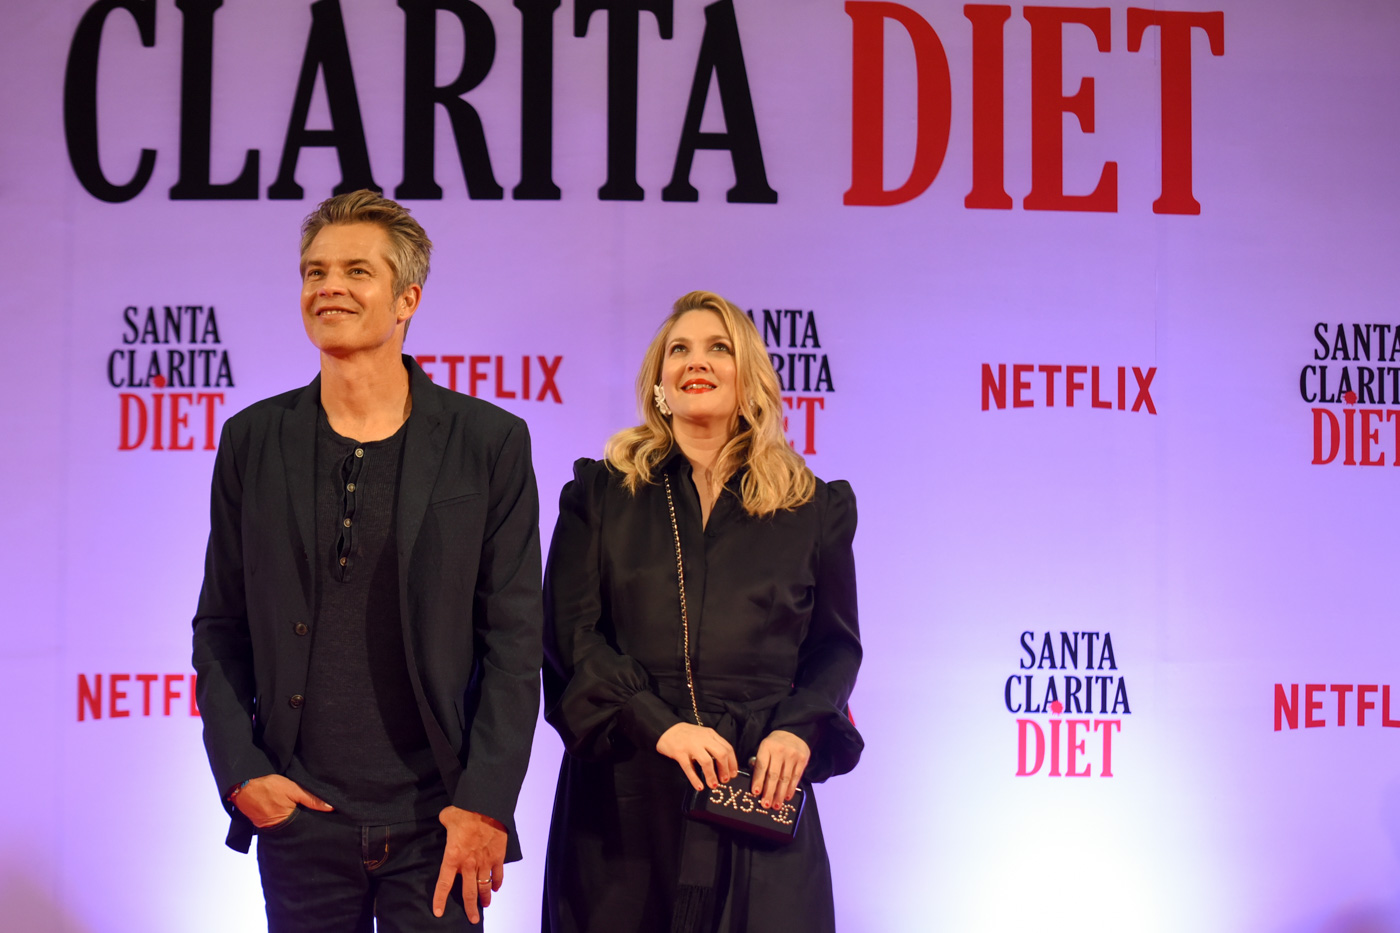 JOEL AND SHIELA. 'Santa Clarita Diet' stars Timothy Olyphant and Drew Barrymore greet their Manila fans at a press presentation at SM Megamall in 2018. File photo by Alecs Ongcal/Rappler